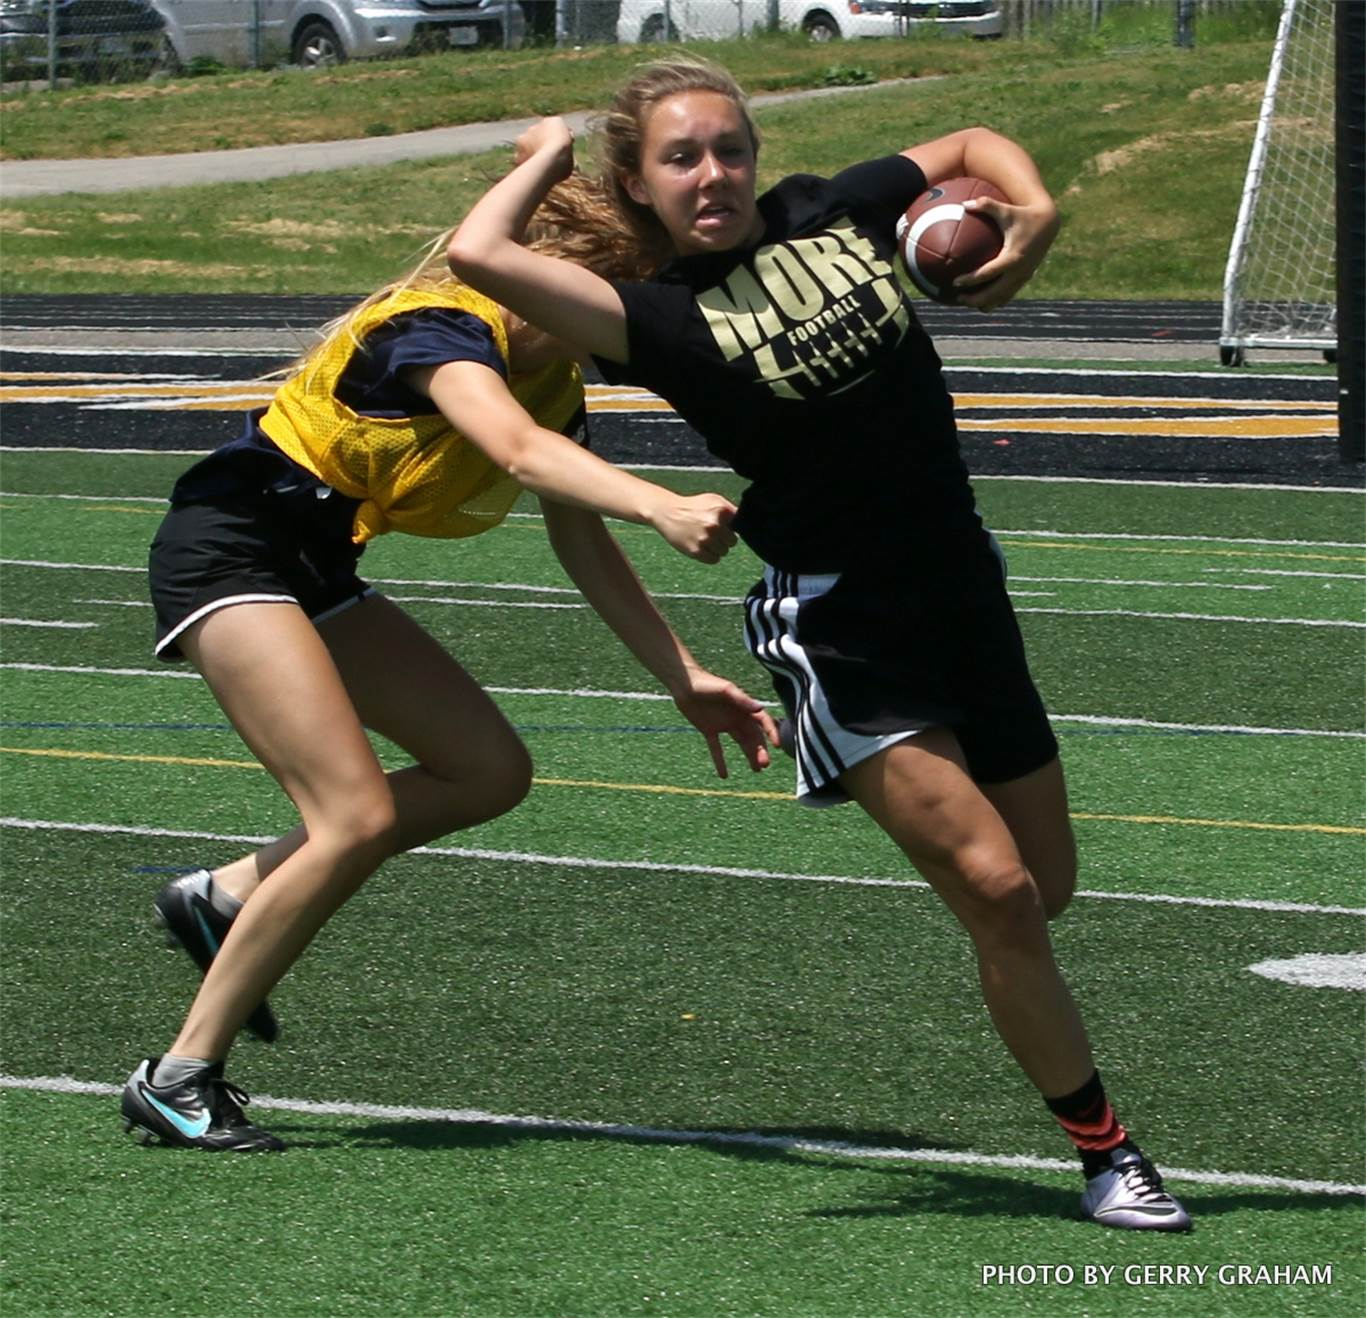 st mary wins second consecutive girls touch football title photo by gerry graham